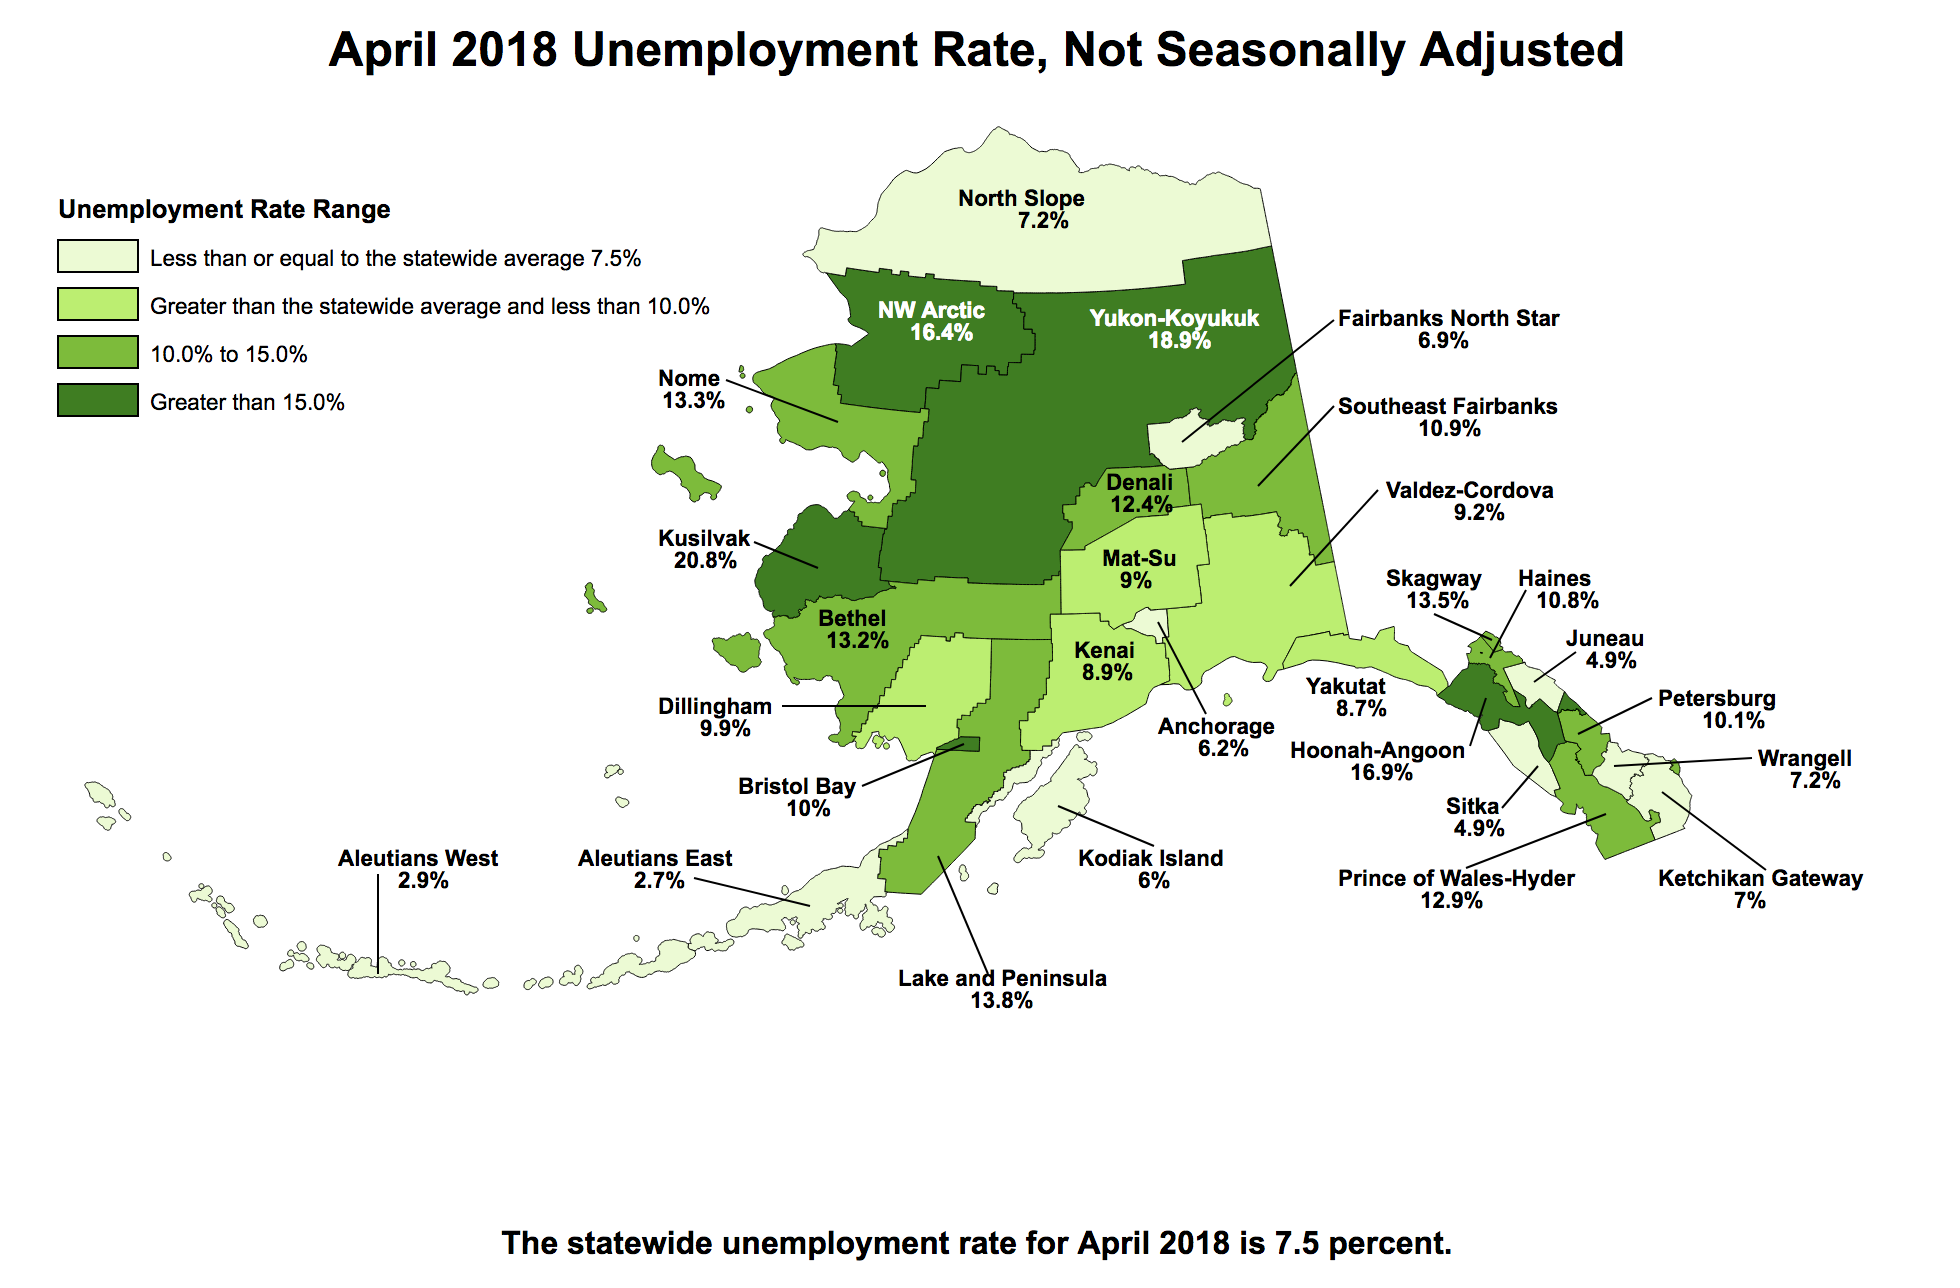 Image credit: Alaska Department of Labor and Workforce Development